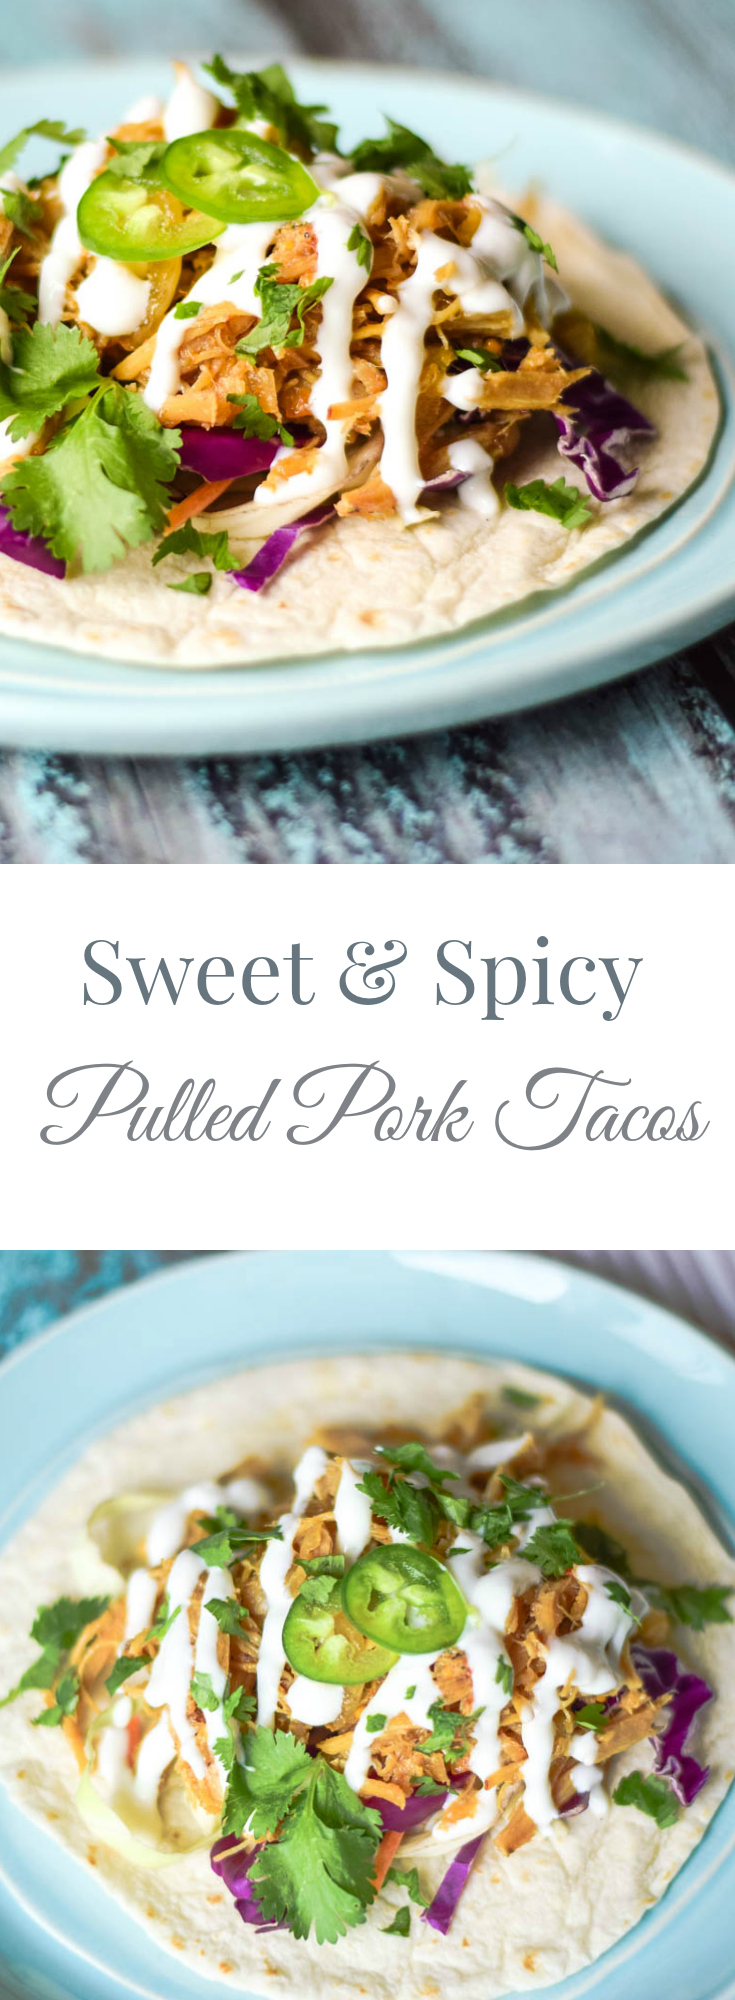 Sweet & Spicy Pulled Pork Tacos